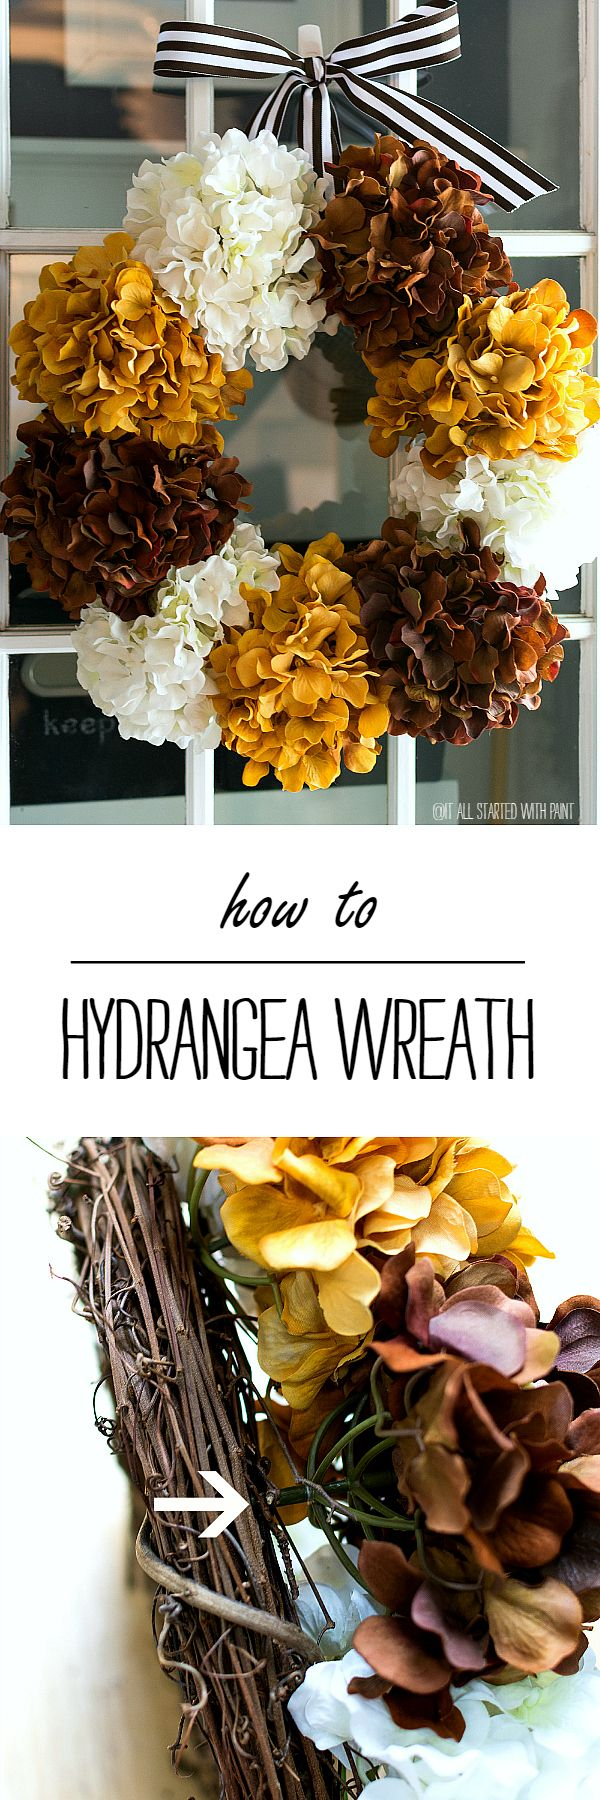 Hydrangea Wreath for Fall - It All Started With Paint